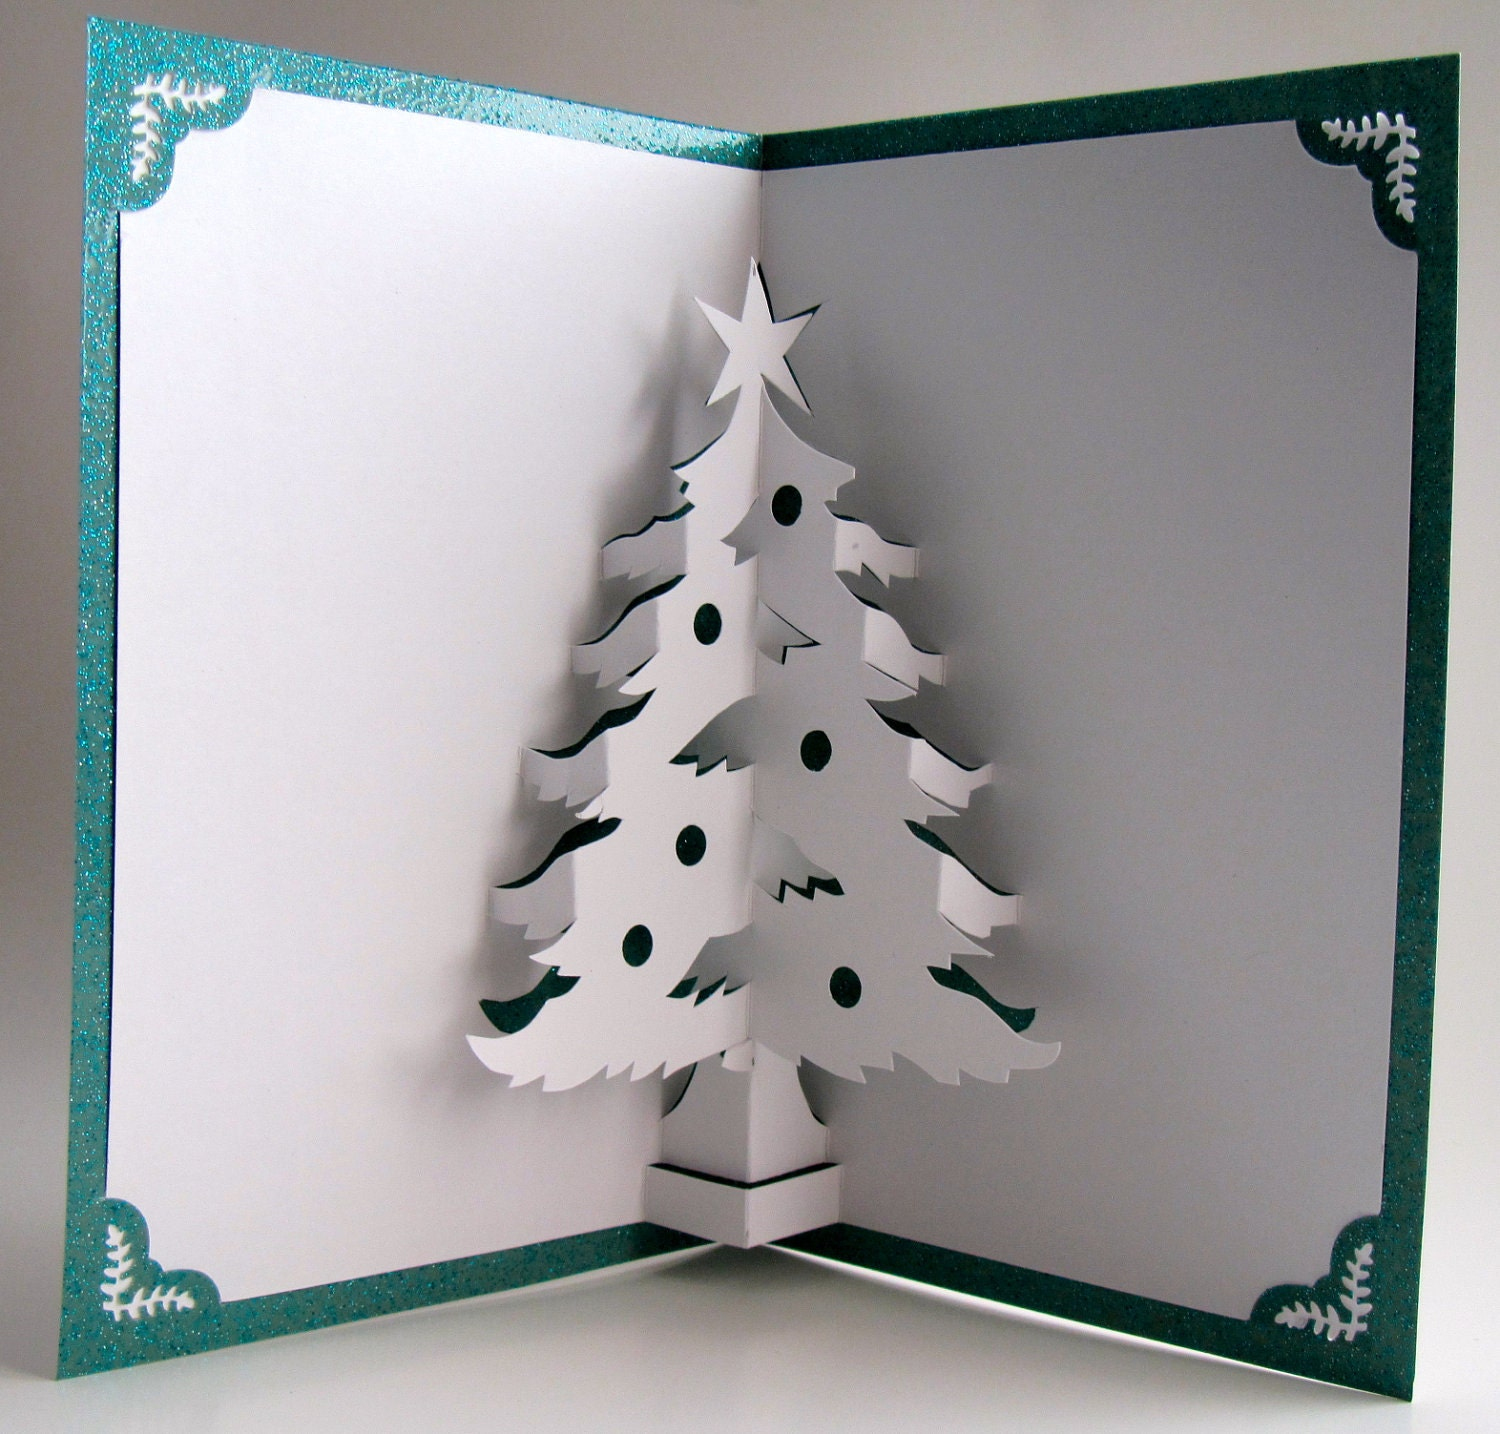 Christmas tree 3d pop up home d cor handmade cut by hand for 3d christmas cards to make at home